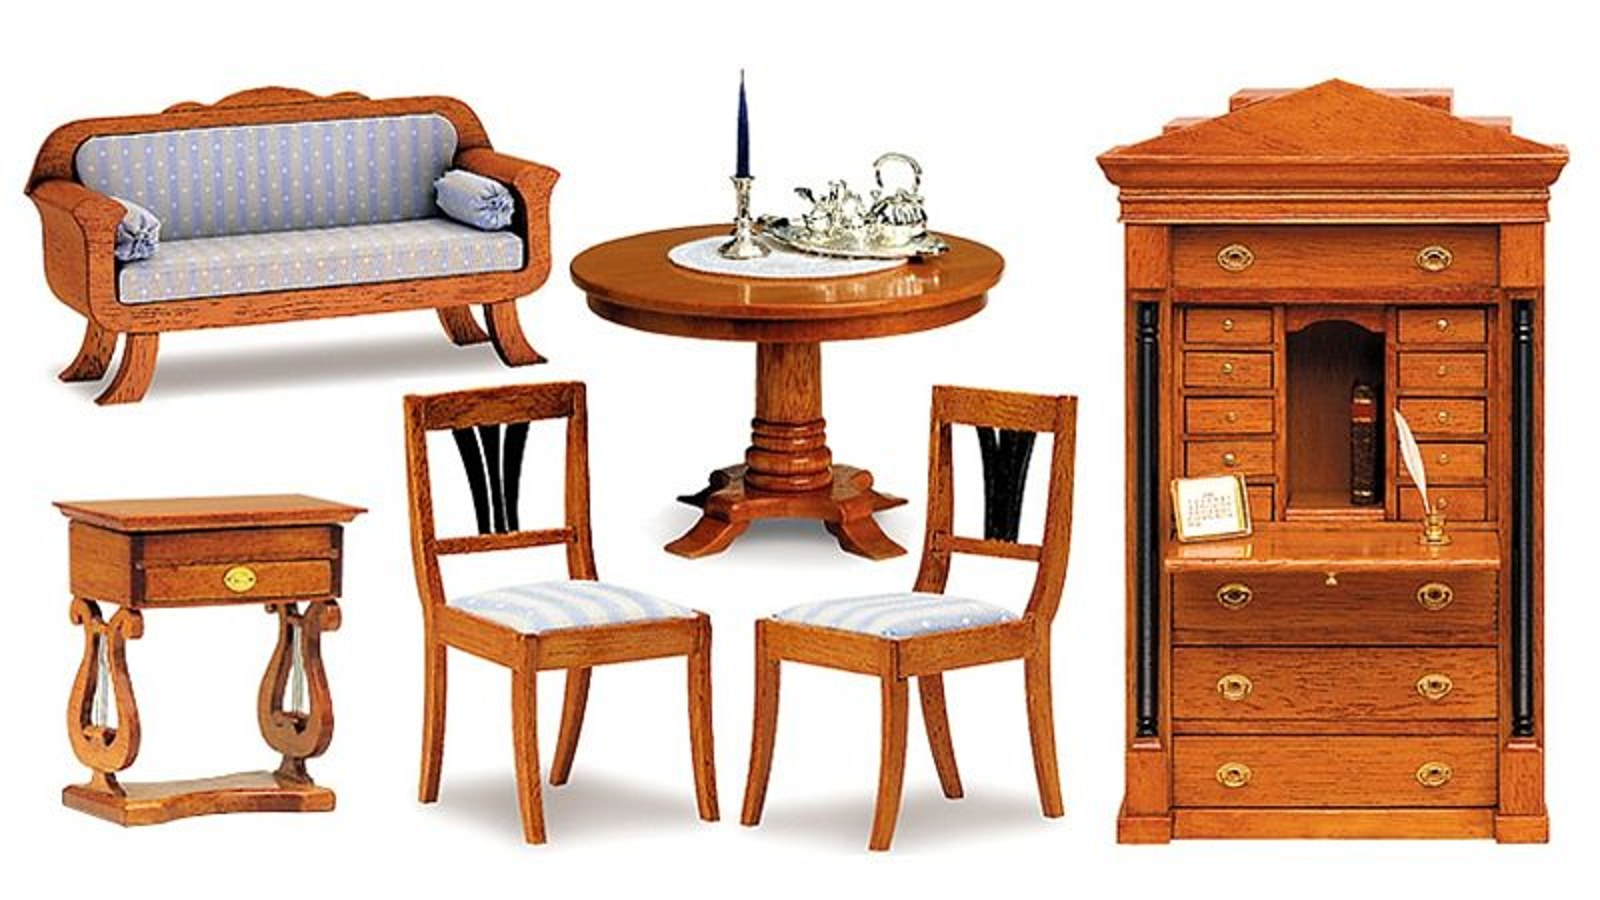 Style furniture kits at its finest!